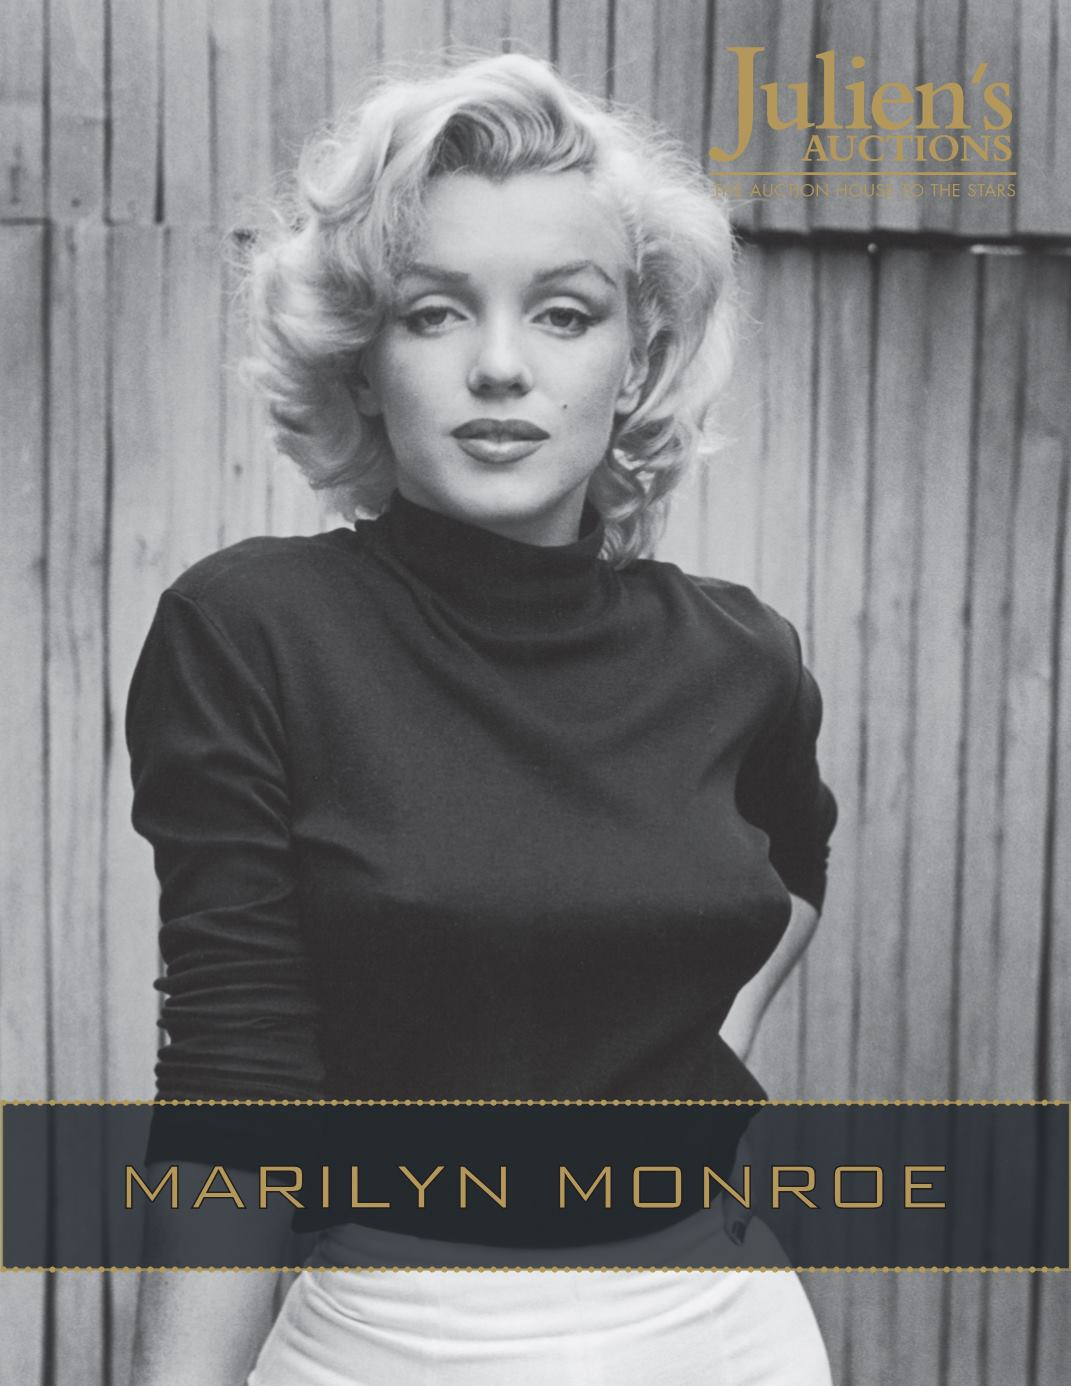 One of the most comprehensive auctions of Marilyn Monroe property takes place this week by Julien's Auctions in Los Angeles.